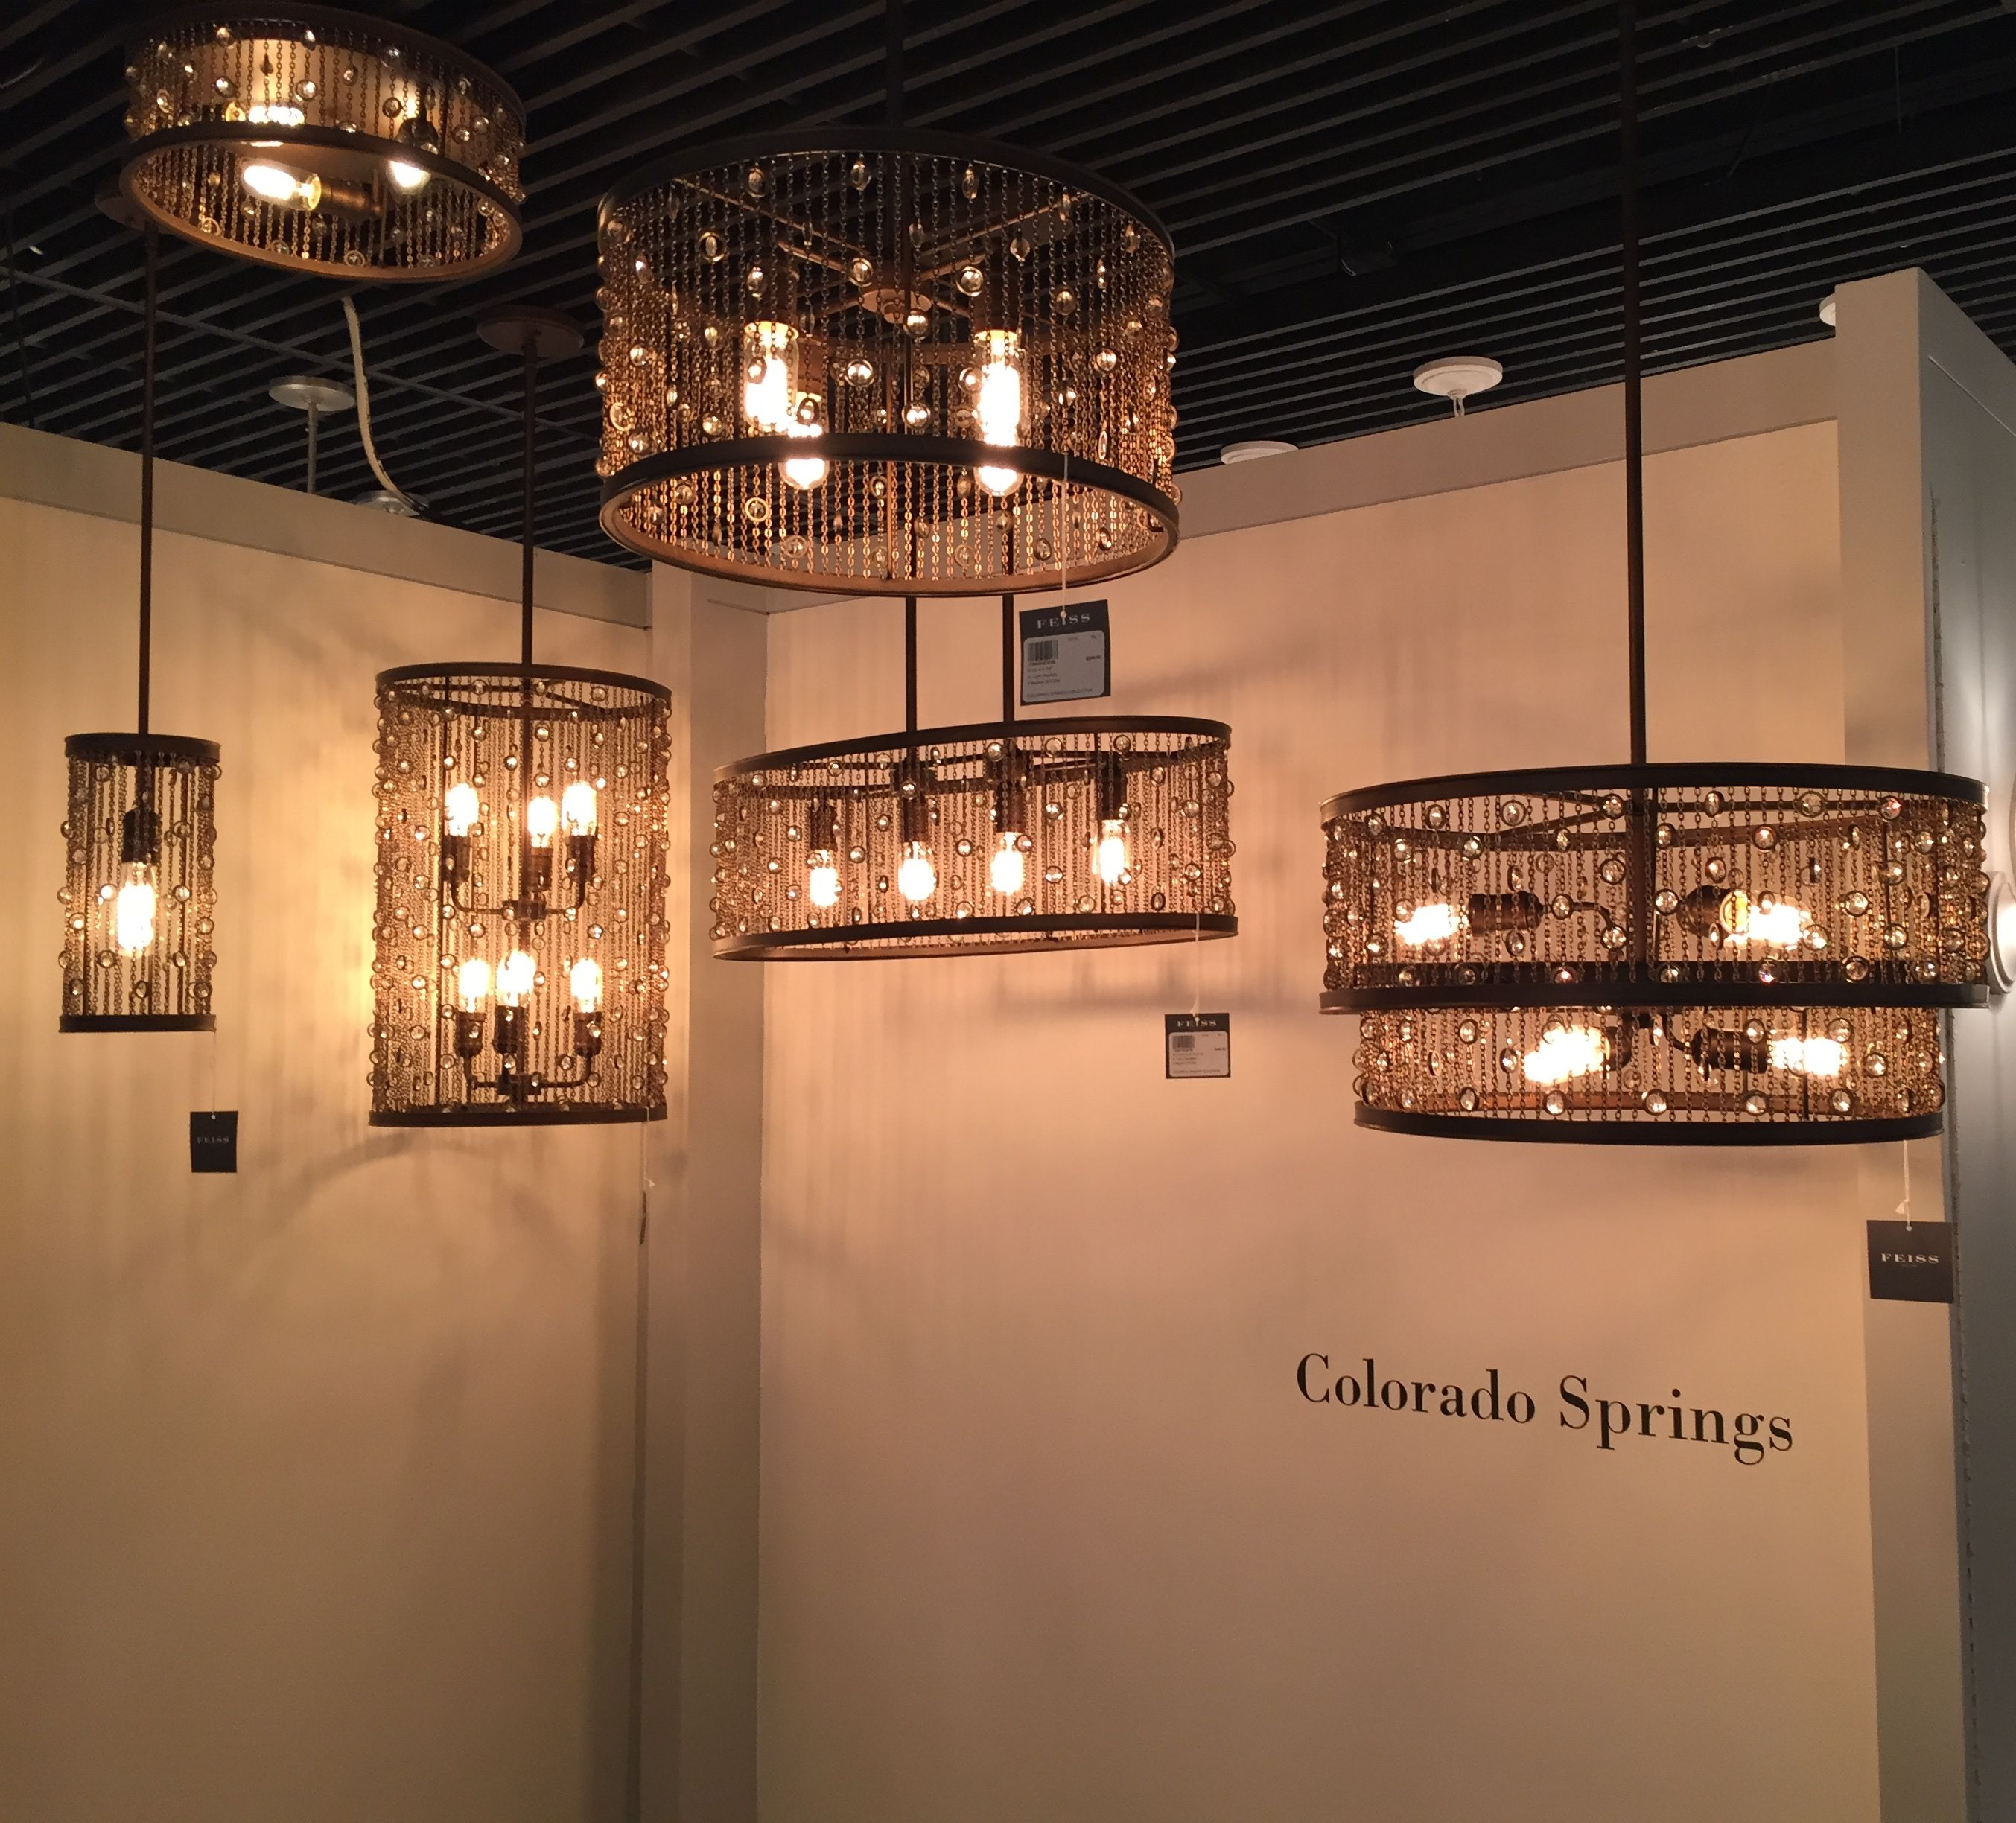 Feissu0027 Colorado Spring Collection: Modern And Rustic Themes Work  Beautifully Together In The Colorado Springs Lighting Collection By Feiss.